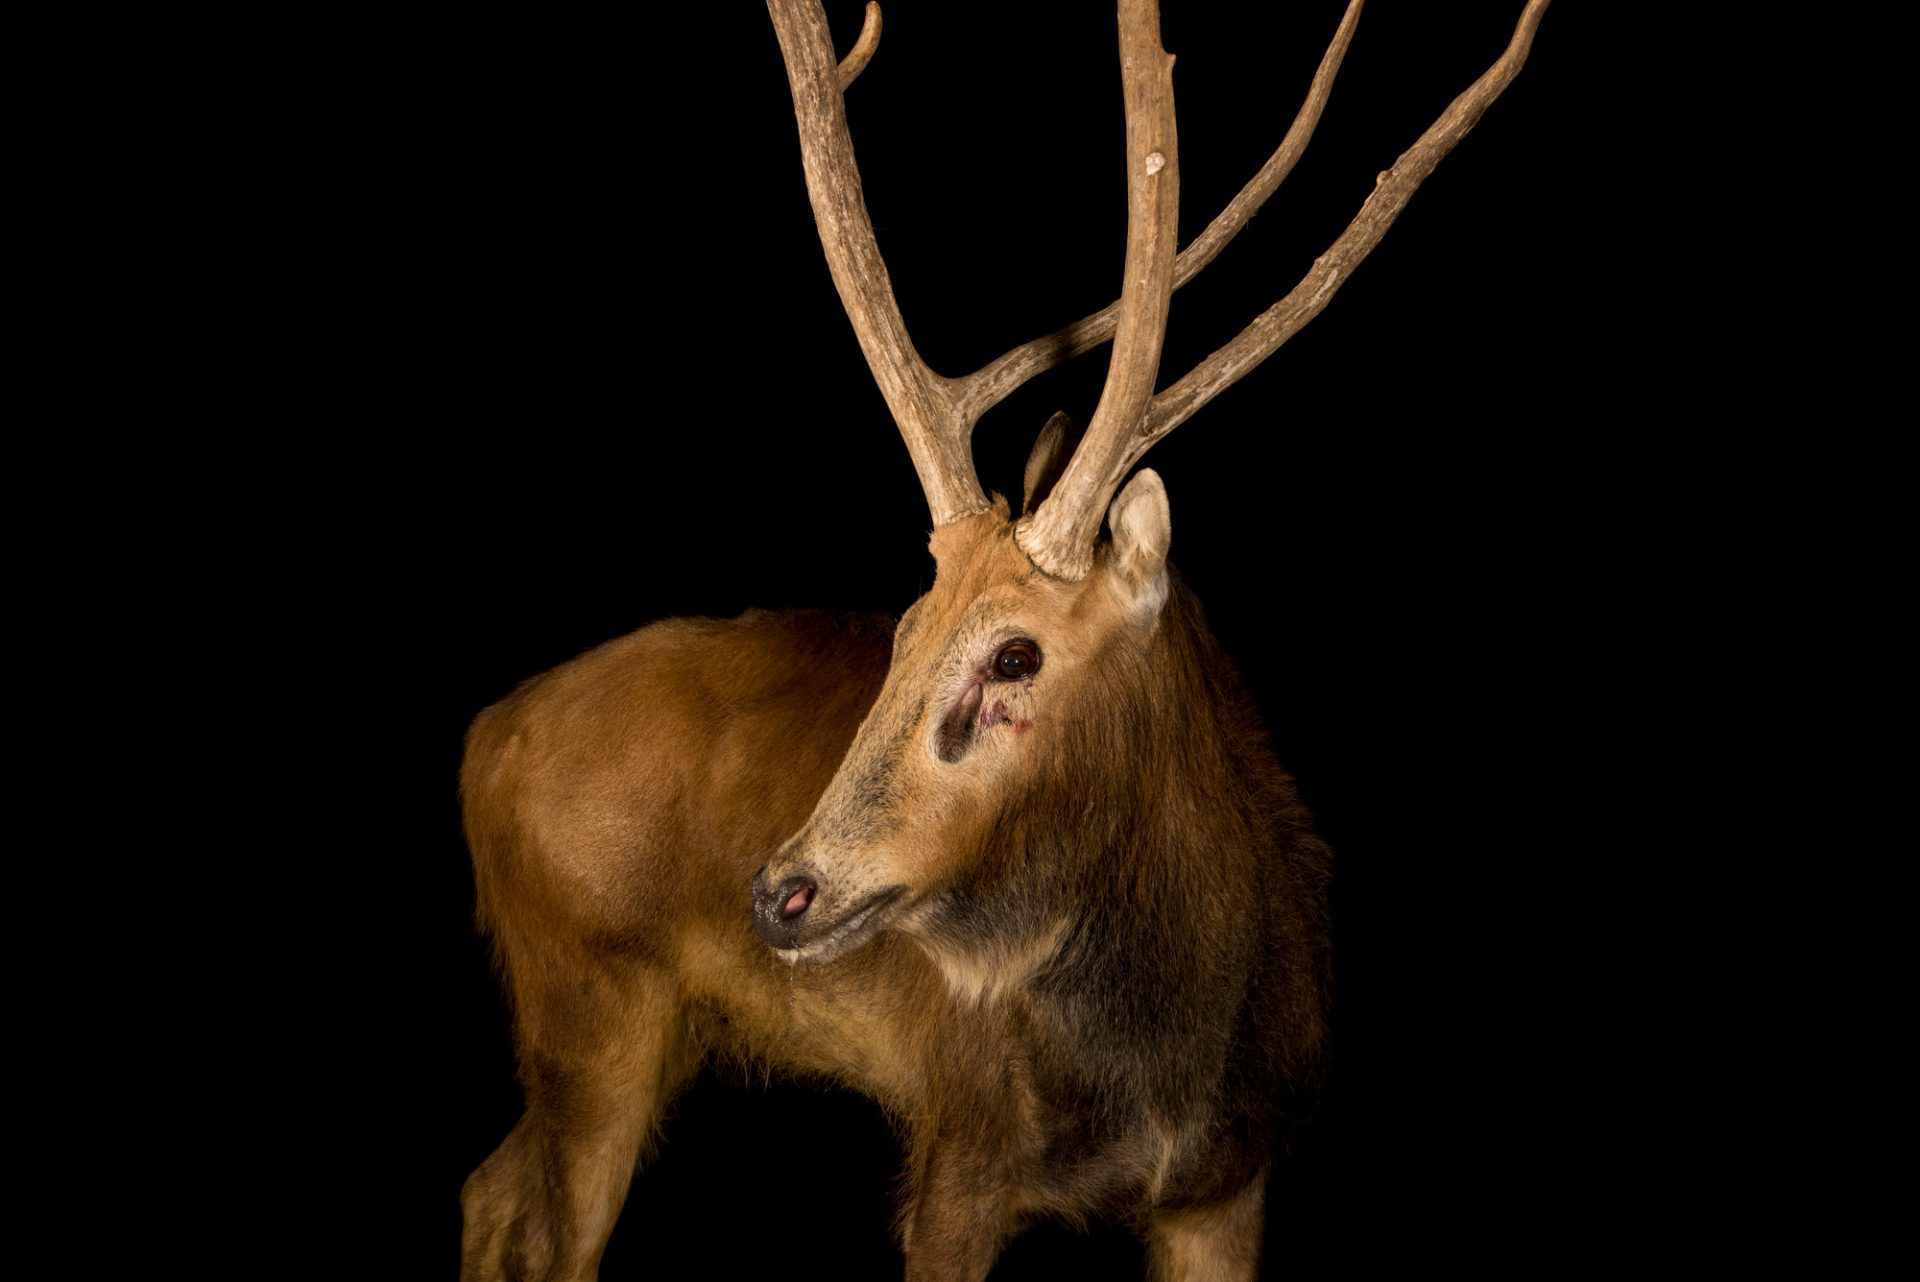 Photo: A male Pere David's deer (Elaphurus davidianus) at the Madrid Zoo. This species is now extinct in the wild.